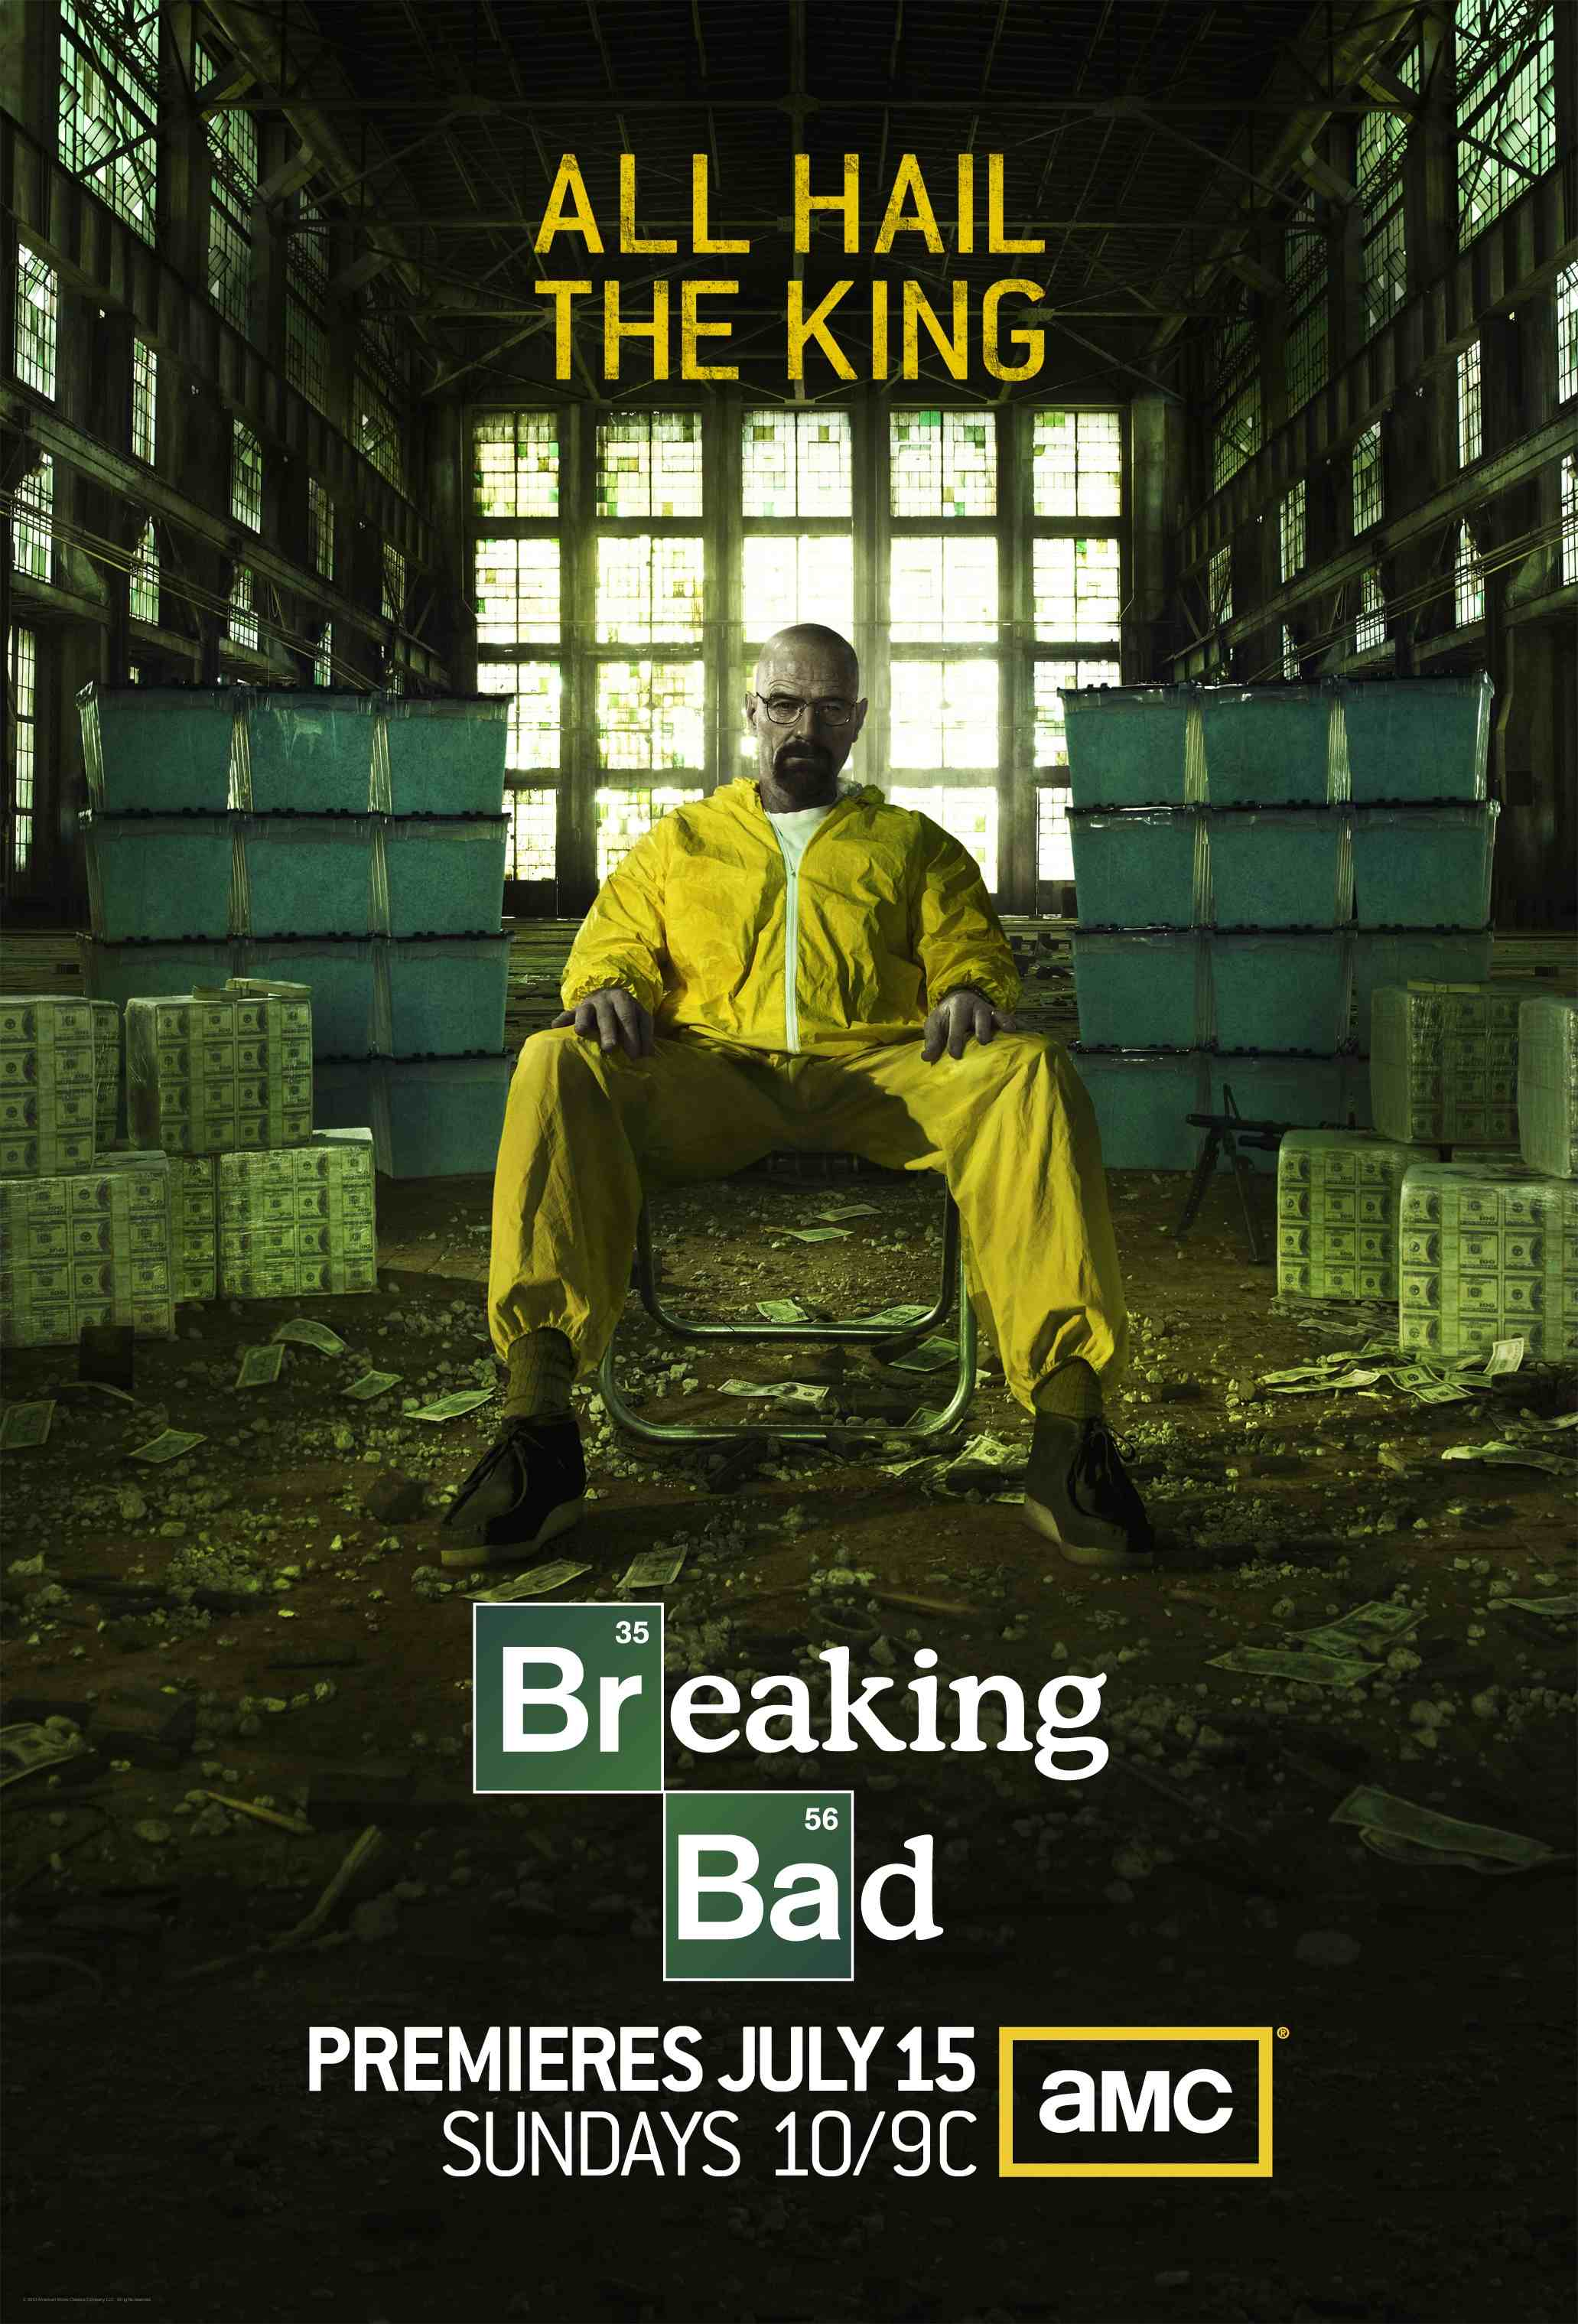 http://rugarated.files.wordpress.com/2012/07/breaking-bad-season-five-all-hail-the-king.jpg